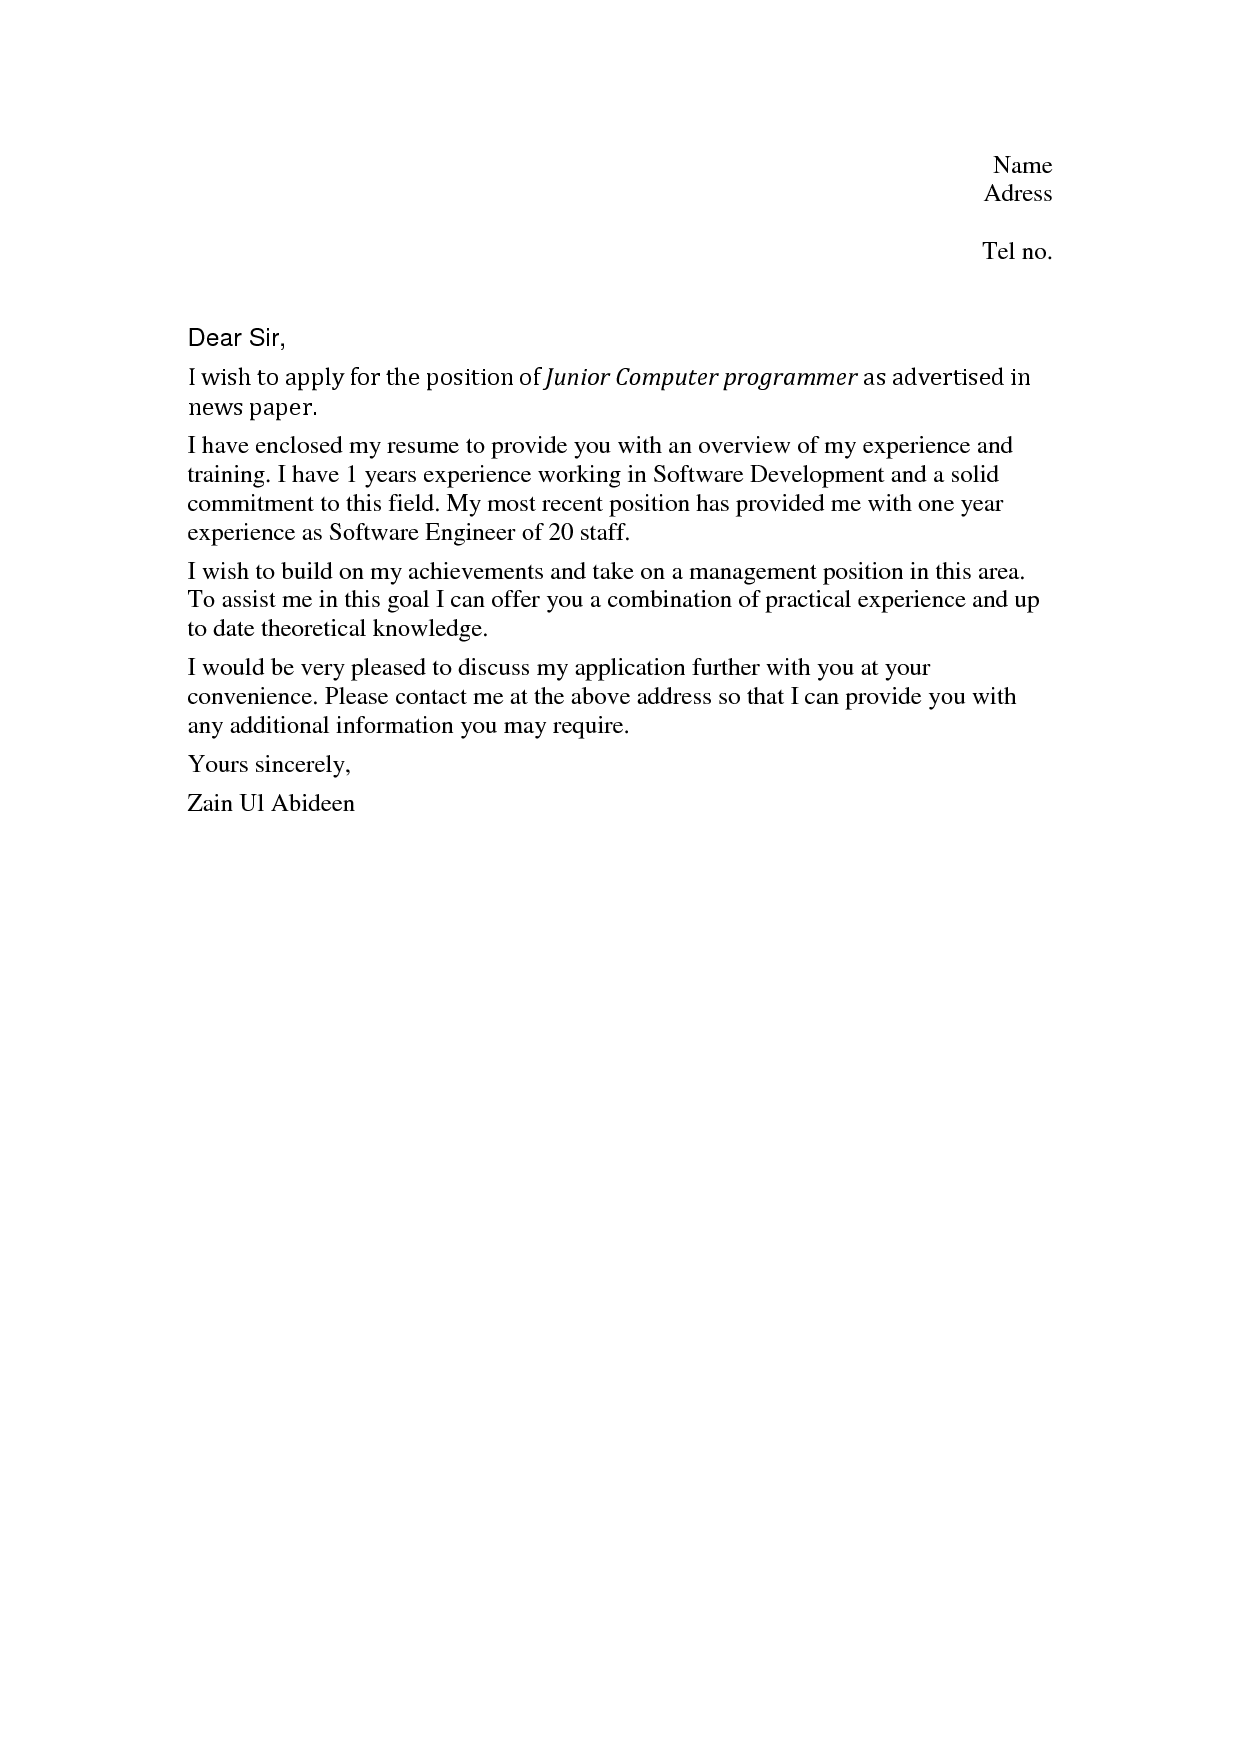 Cover Letter Sample No Work Experience Cover Letter Samplecover Let